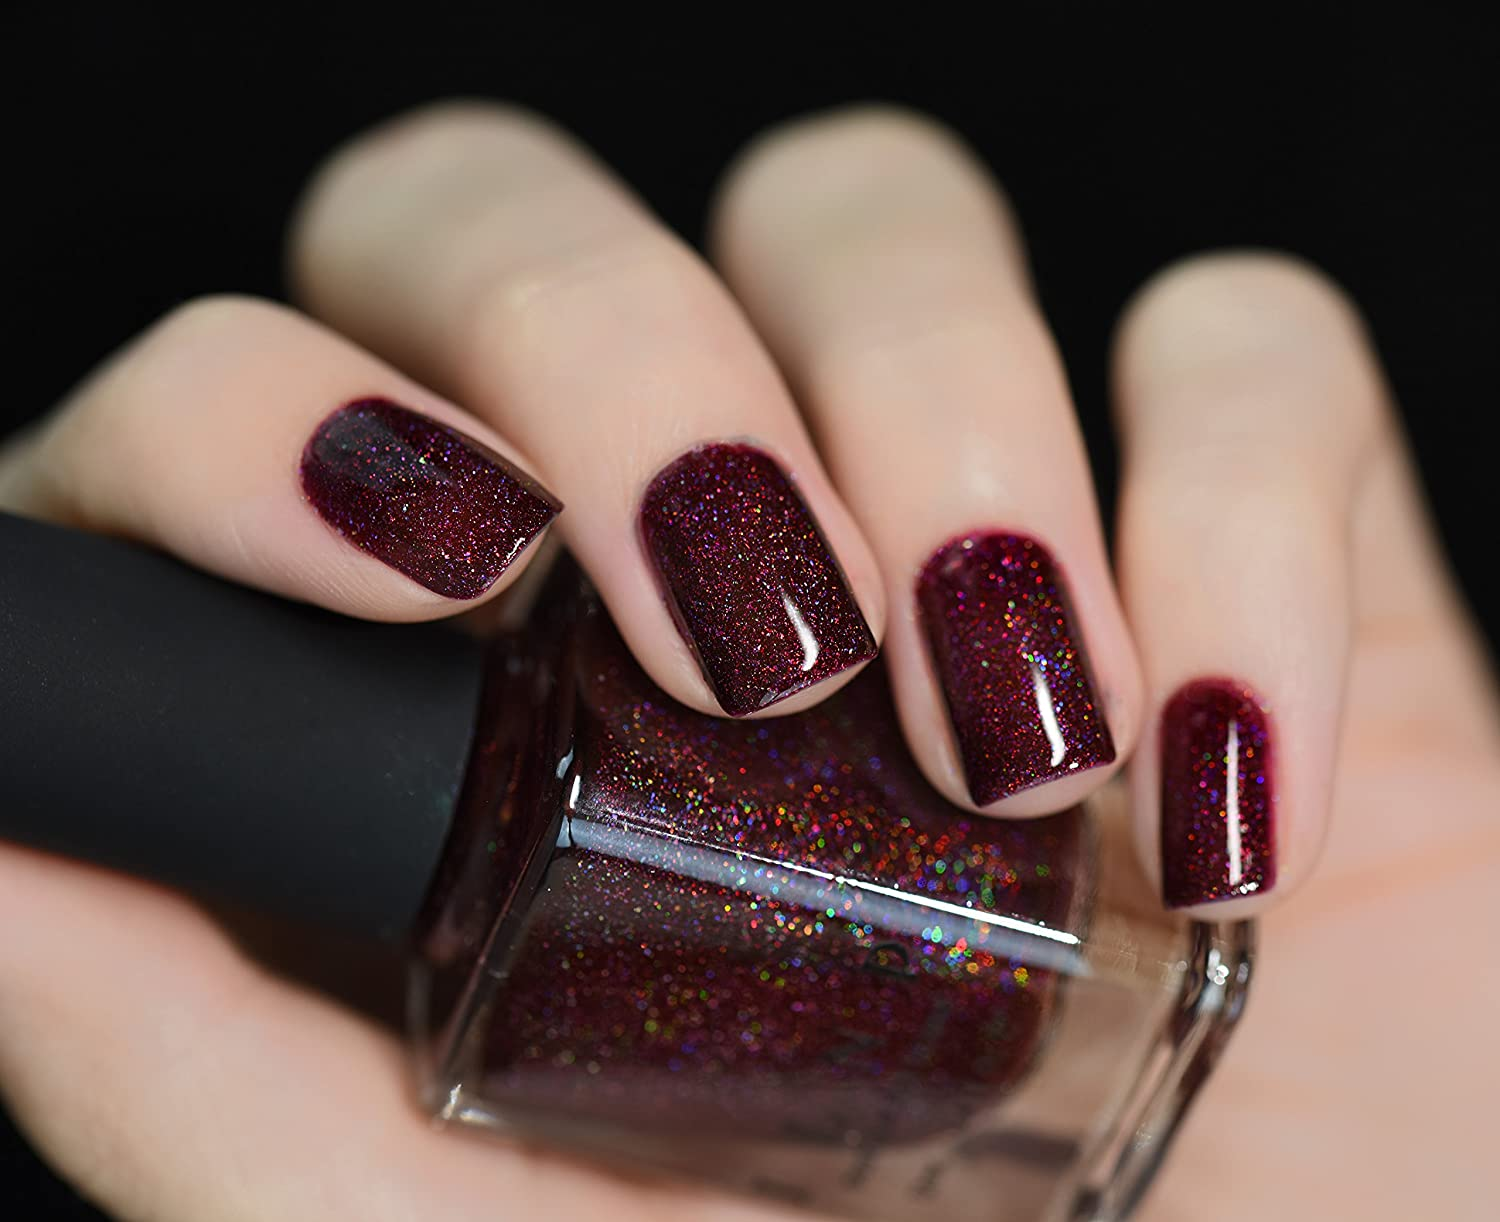 Amazon.com : ILNP Diablo - Vampy Oxblood Holographic Nail Polish ...